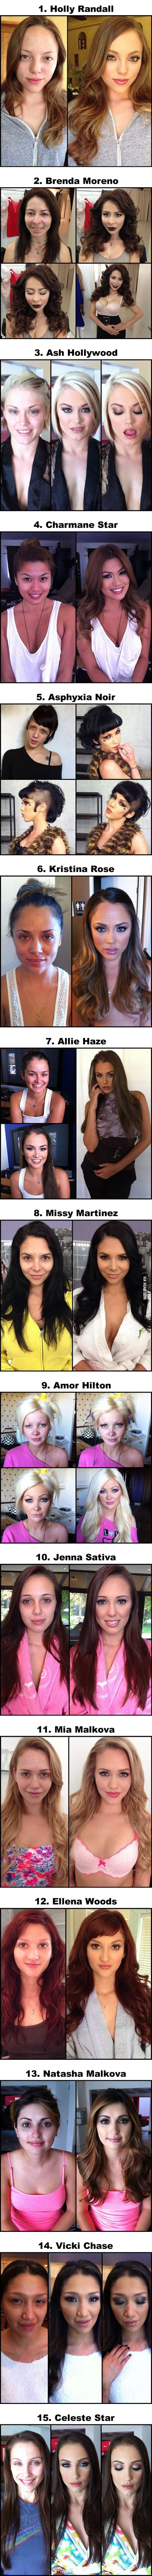 Some of them are actually cute without makeup